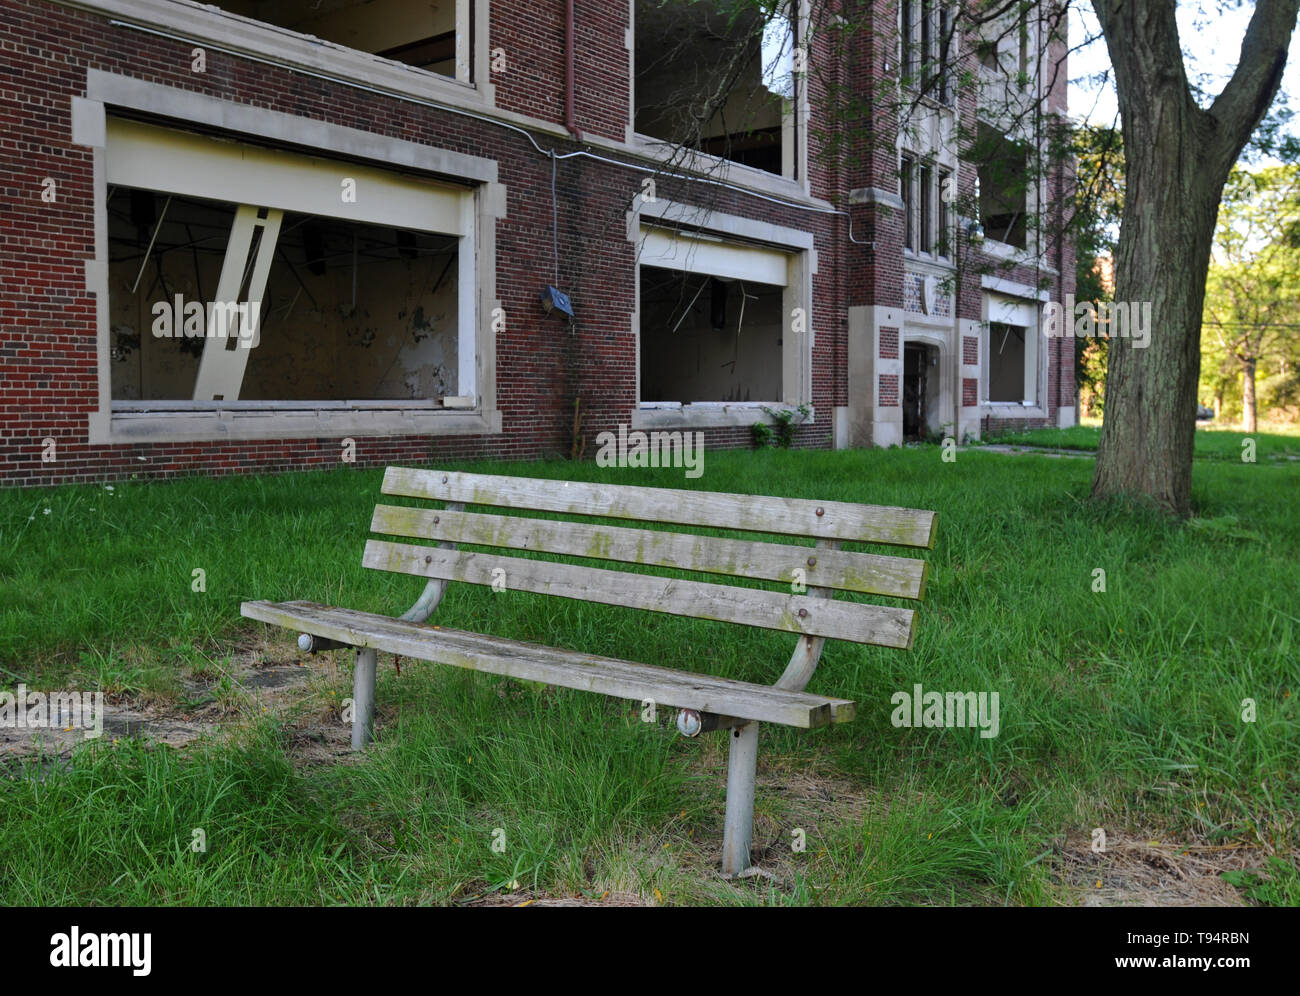 A wooden bench sits in front of an abandoned public school in Detroit, Michigan. All of the building's windows and doors have been broken or removed. - Stock Image